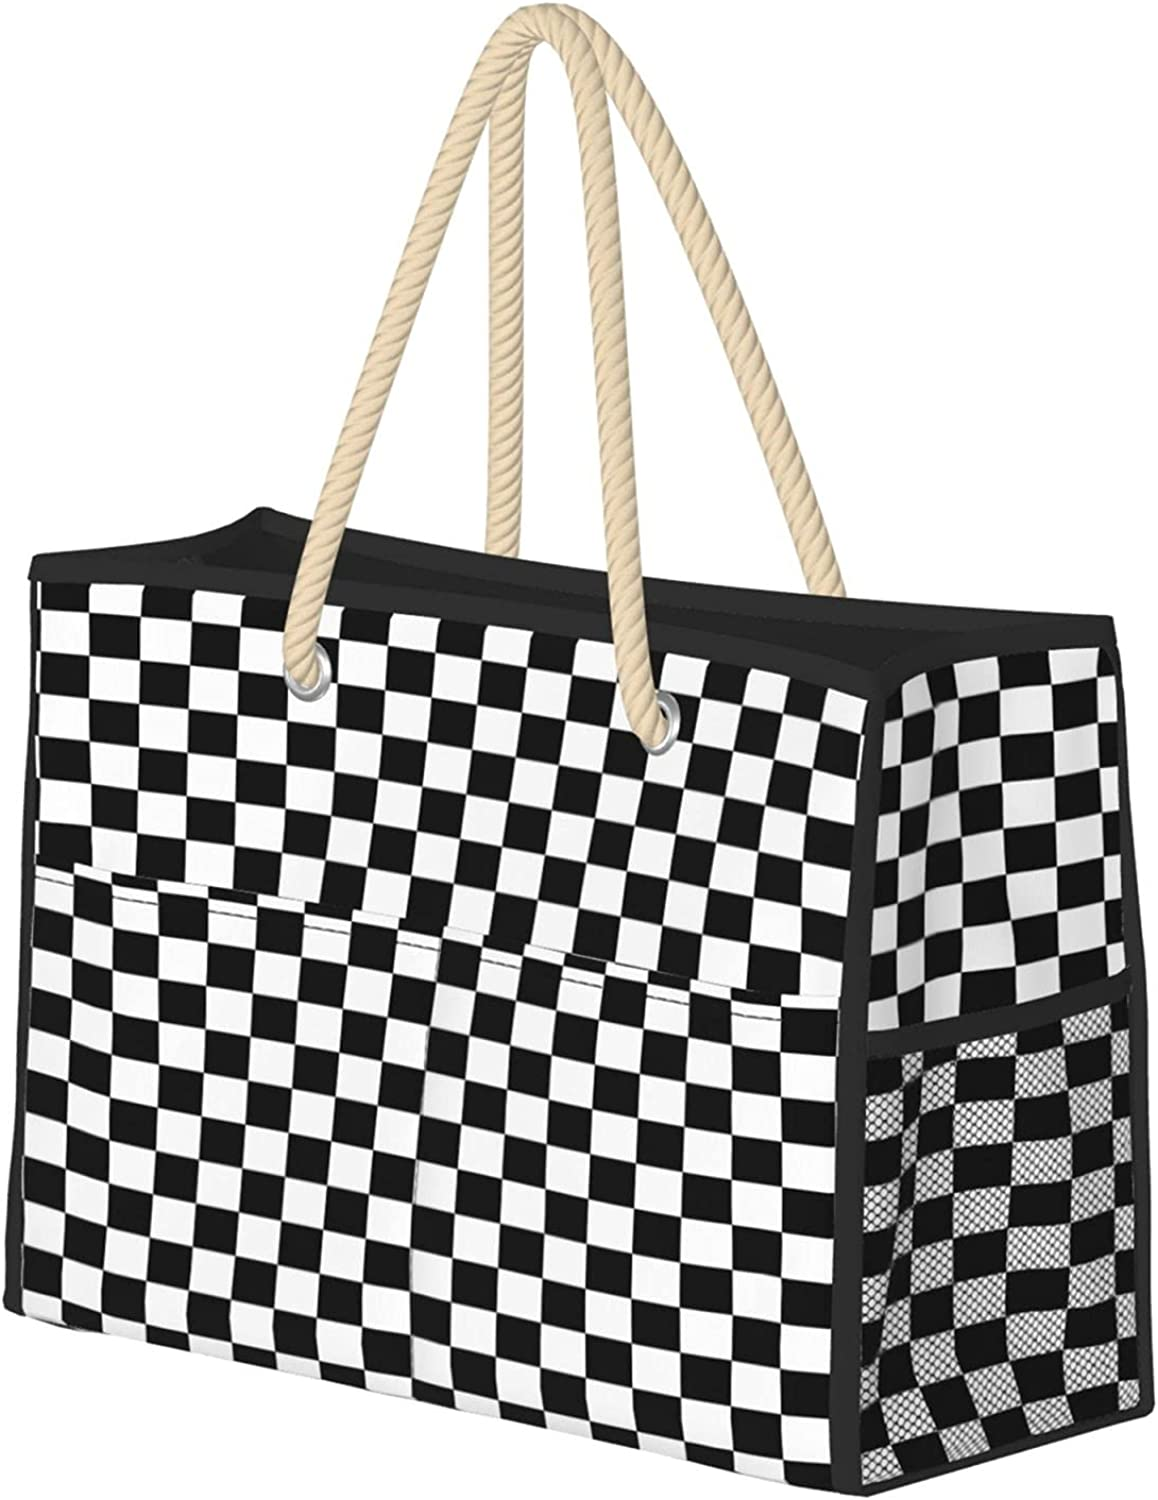 Checker Board Women Beach Tote Bag Challenge the lowest price of Japan Beauty products ☆ With Hand Zipper Travel Large